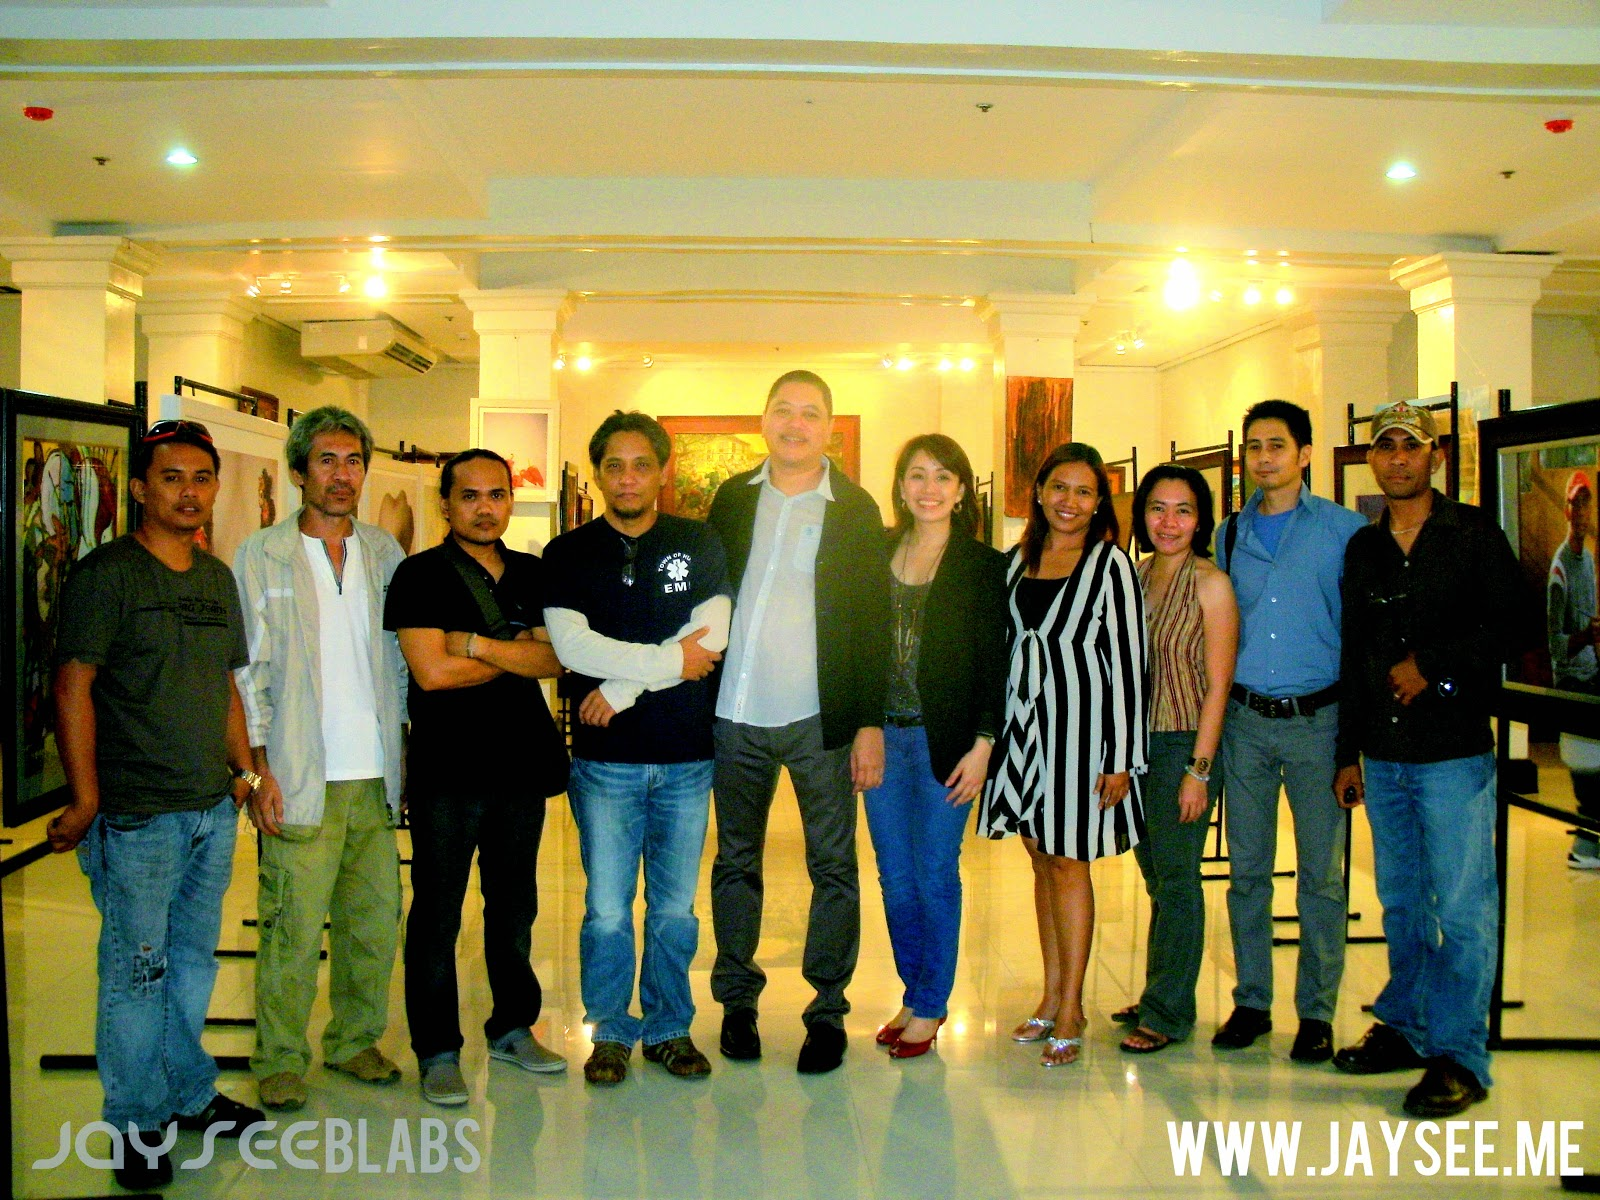 All the artist with Chief Executive Officer Mr. Jon Kenneth Gotiong, Gallery Partner Jo Ann M. Lim and Gallery Manager April May Tudtud-Ramos.